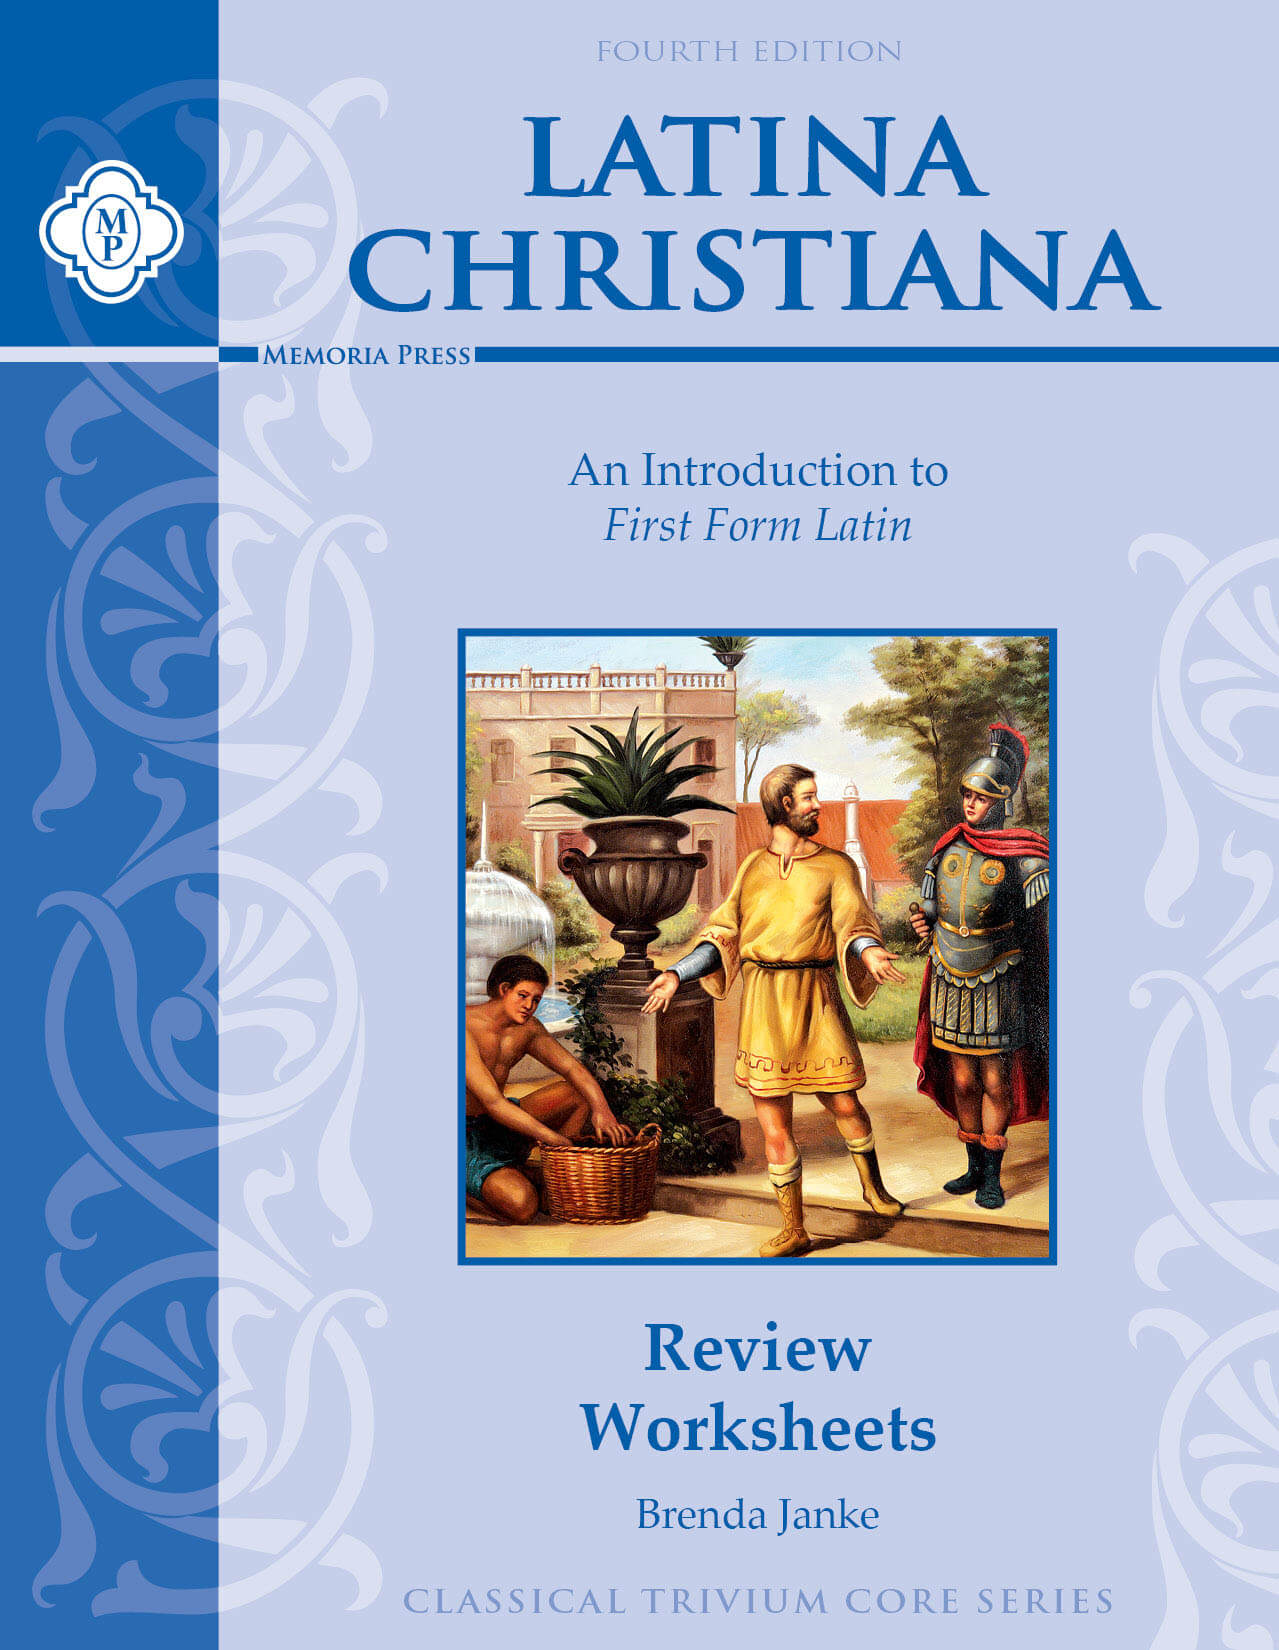 Latina Christiana Review Worksheets Fourth Edition